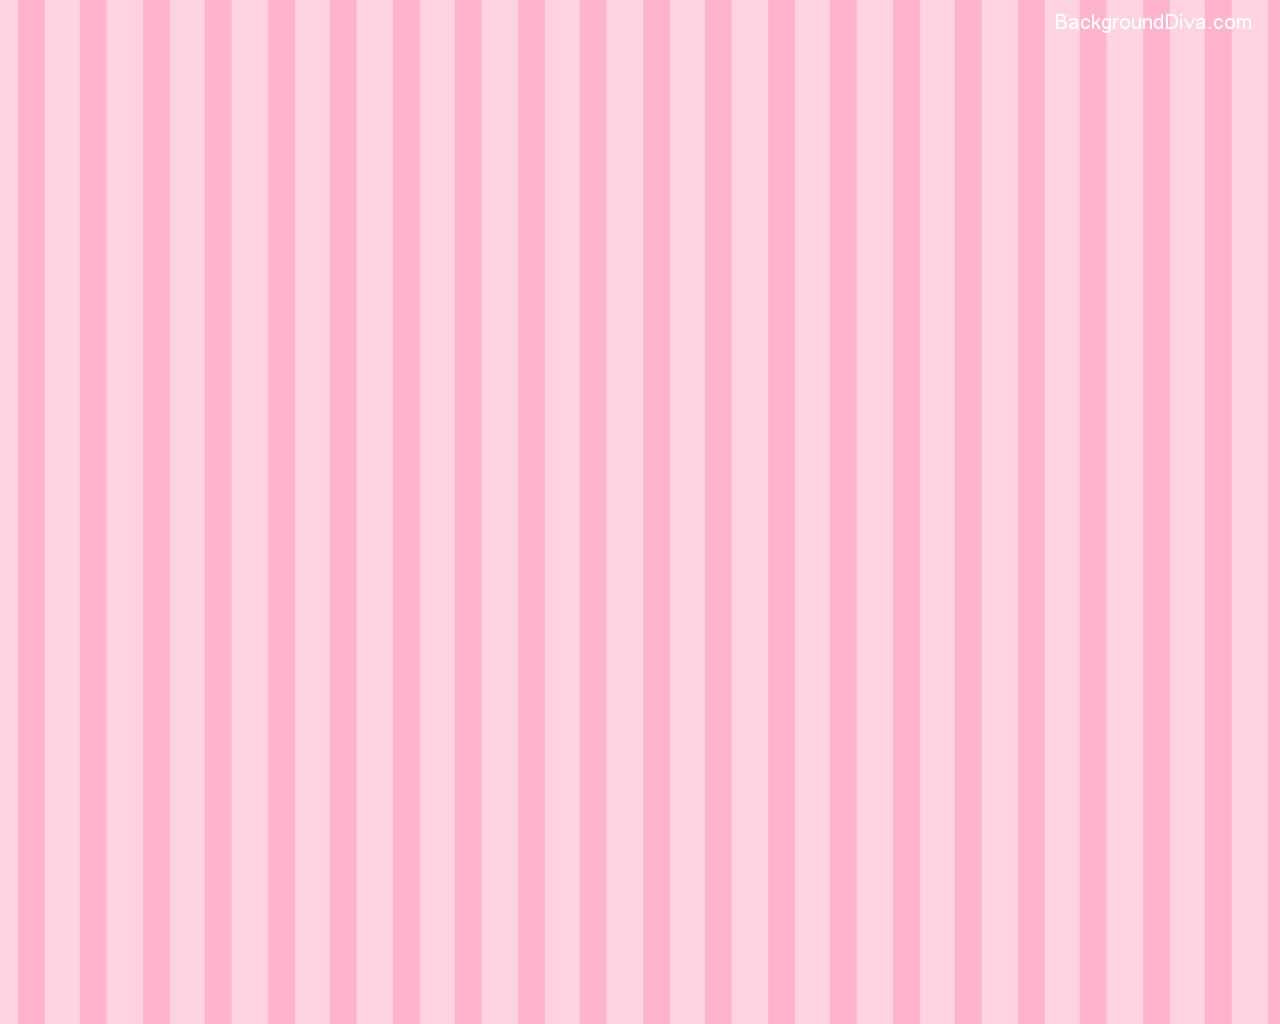 Light Pink Wallpaper Background Images Pictures   Becuo 1280x1024